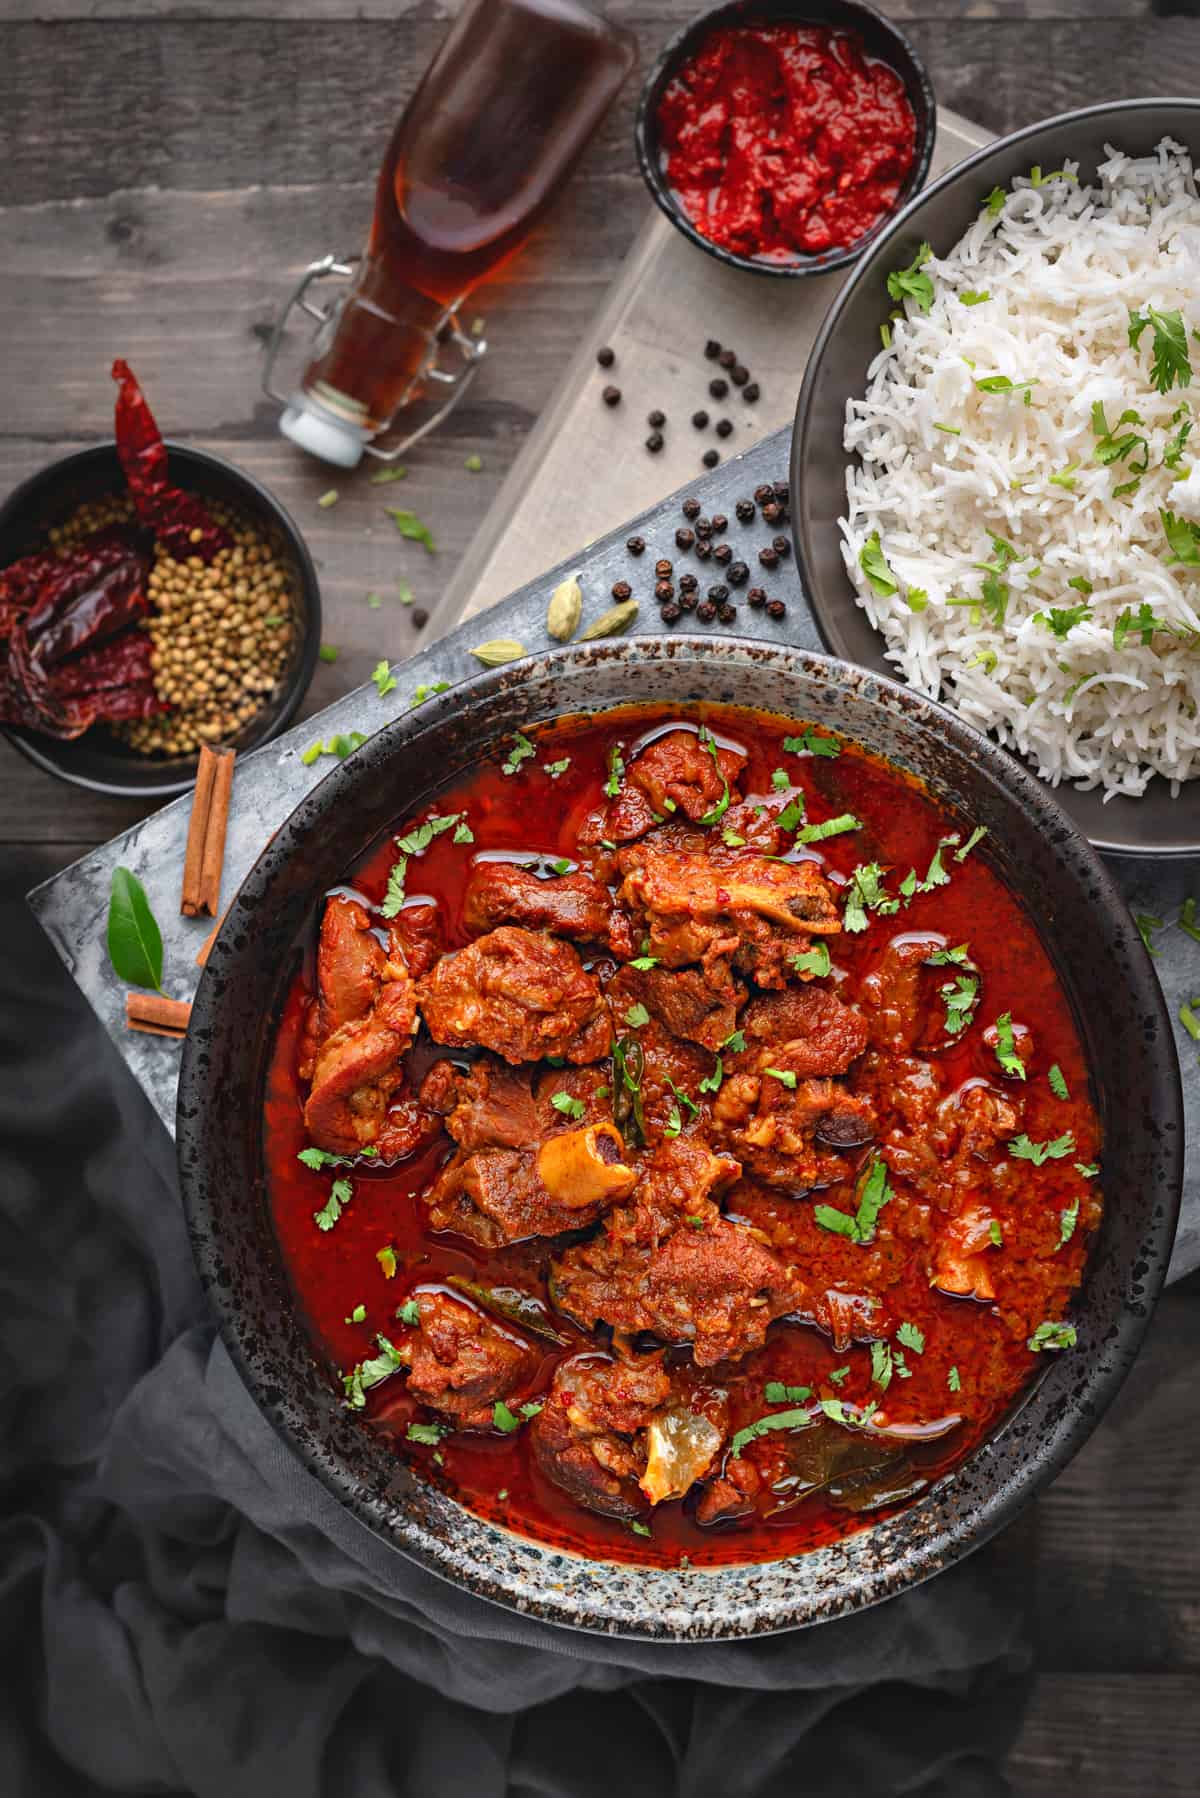 Overhead shot Lamb vindaloo in black bowl along with a bowl of rice on side.